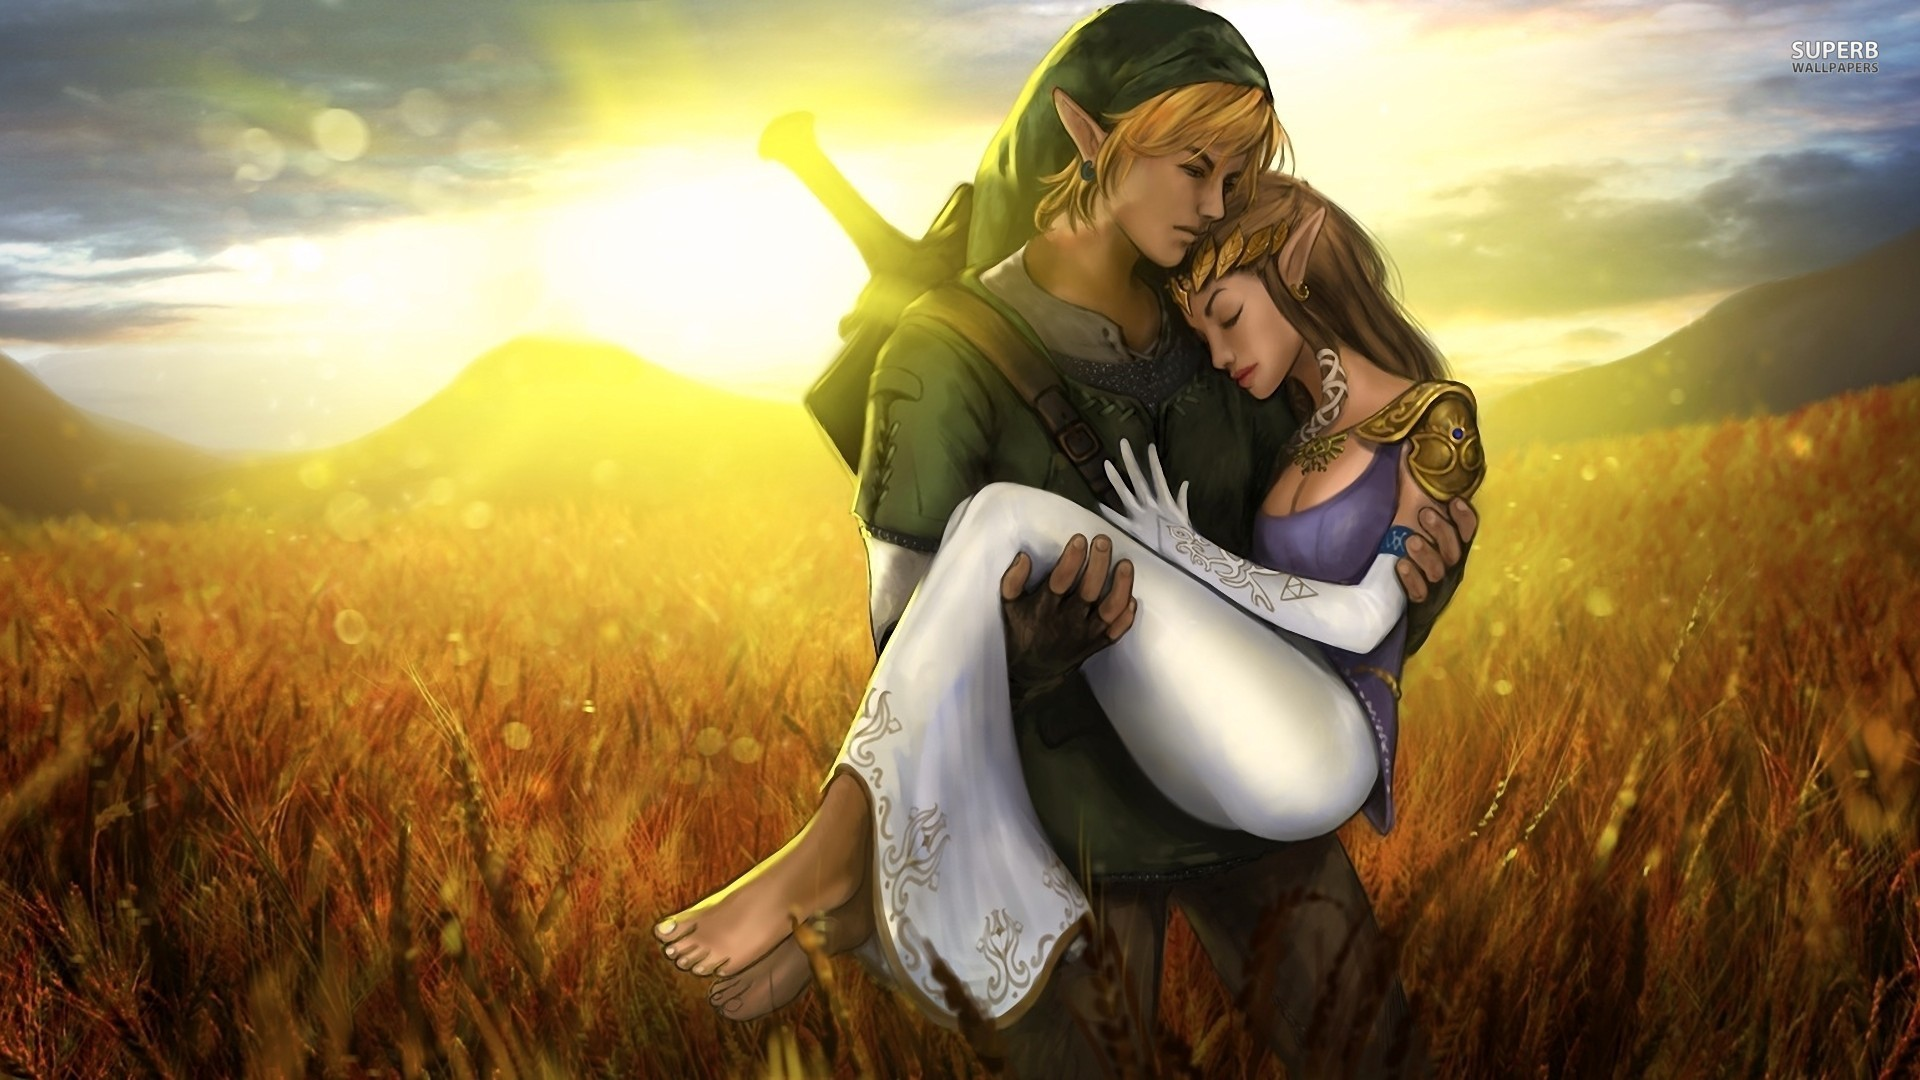 realistic zelda the legend of zelda 1920x1080 wallpaper 1920x1080